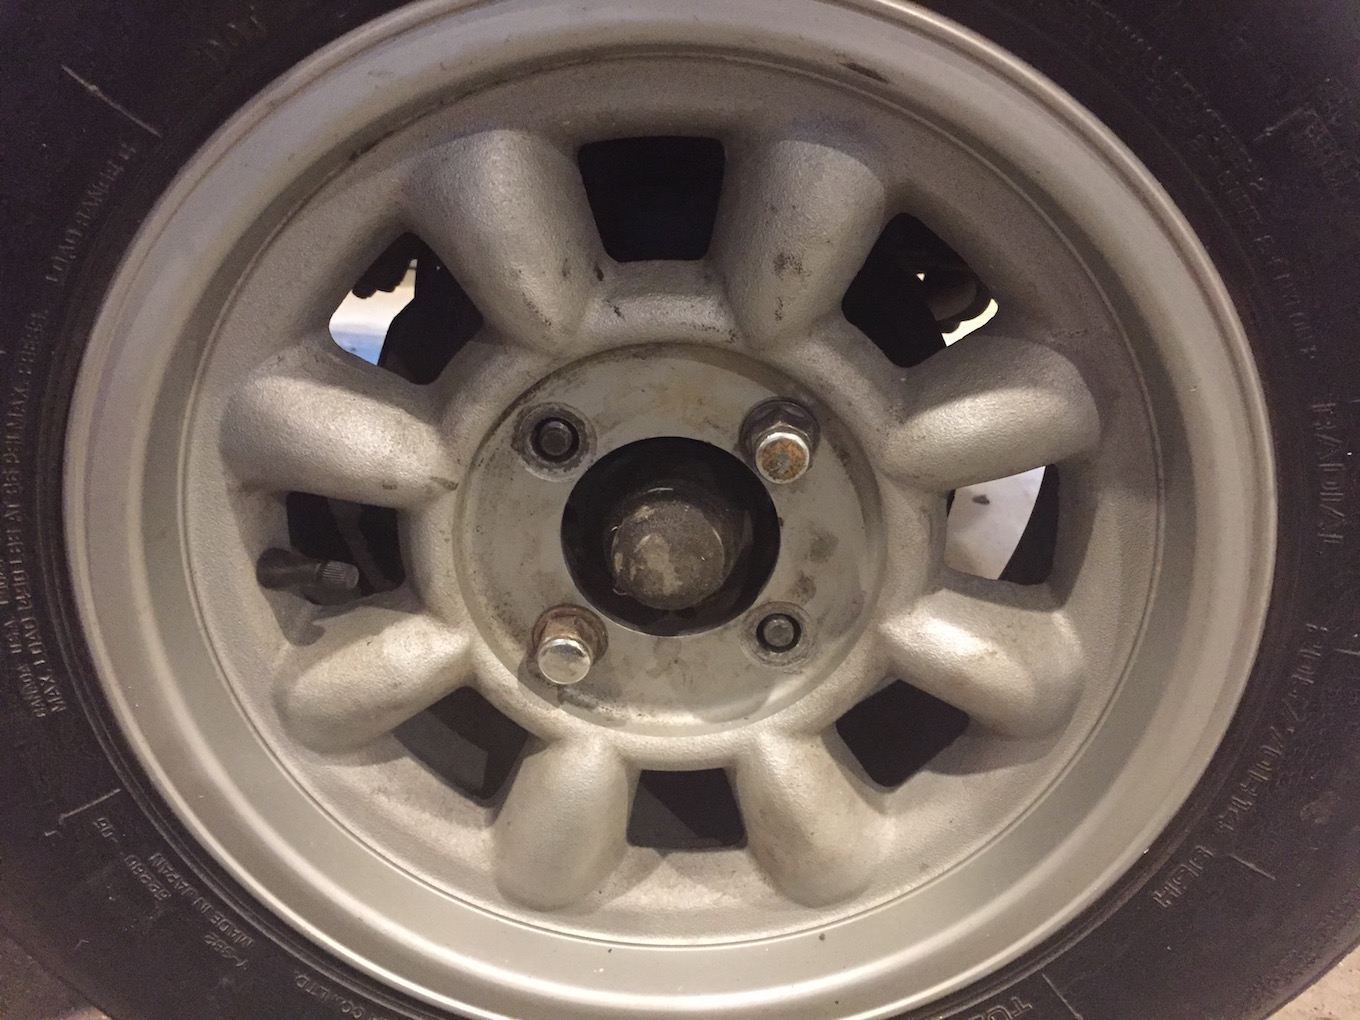 72 510 CSI wheels closeup.jpg